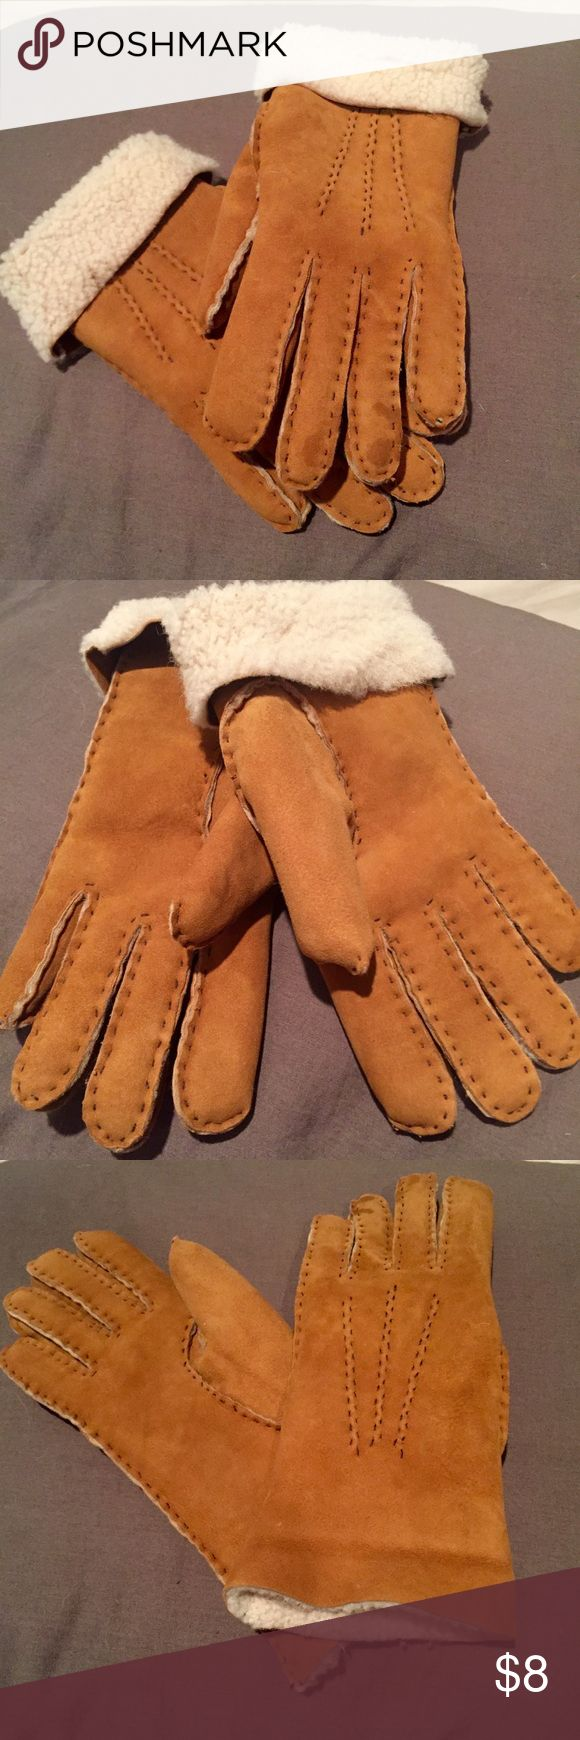 Camel Suede Lined Gloves No tags but never used. Hand size M Accessories Gloves & Mittens